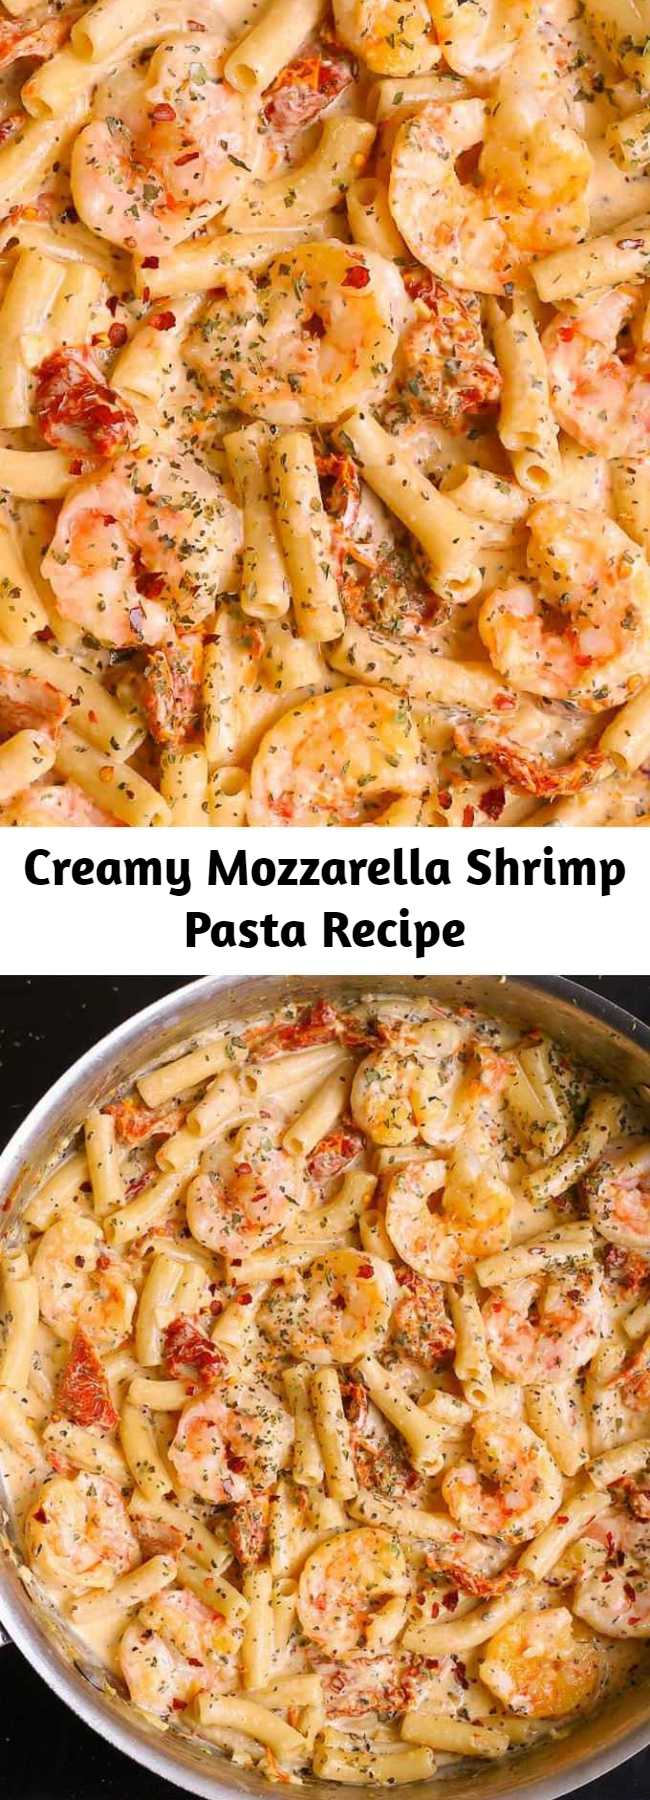 Creamy Mozzarella Shrimp Pasta Recipe - Delicious shrimp pasta with mozzarella cheese alfredo sauce is made from scratch with sun-dried tomatoes, basil, red pepper flakes, paprika, and cream.  You'll have a perfectly cooked shrimp: soft and tender and never dry or rubbery!